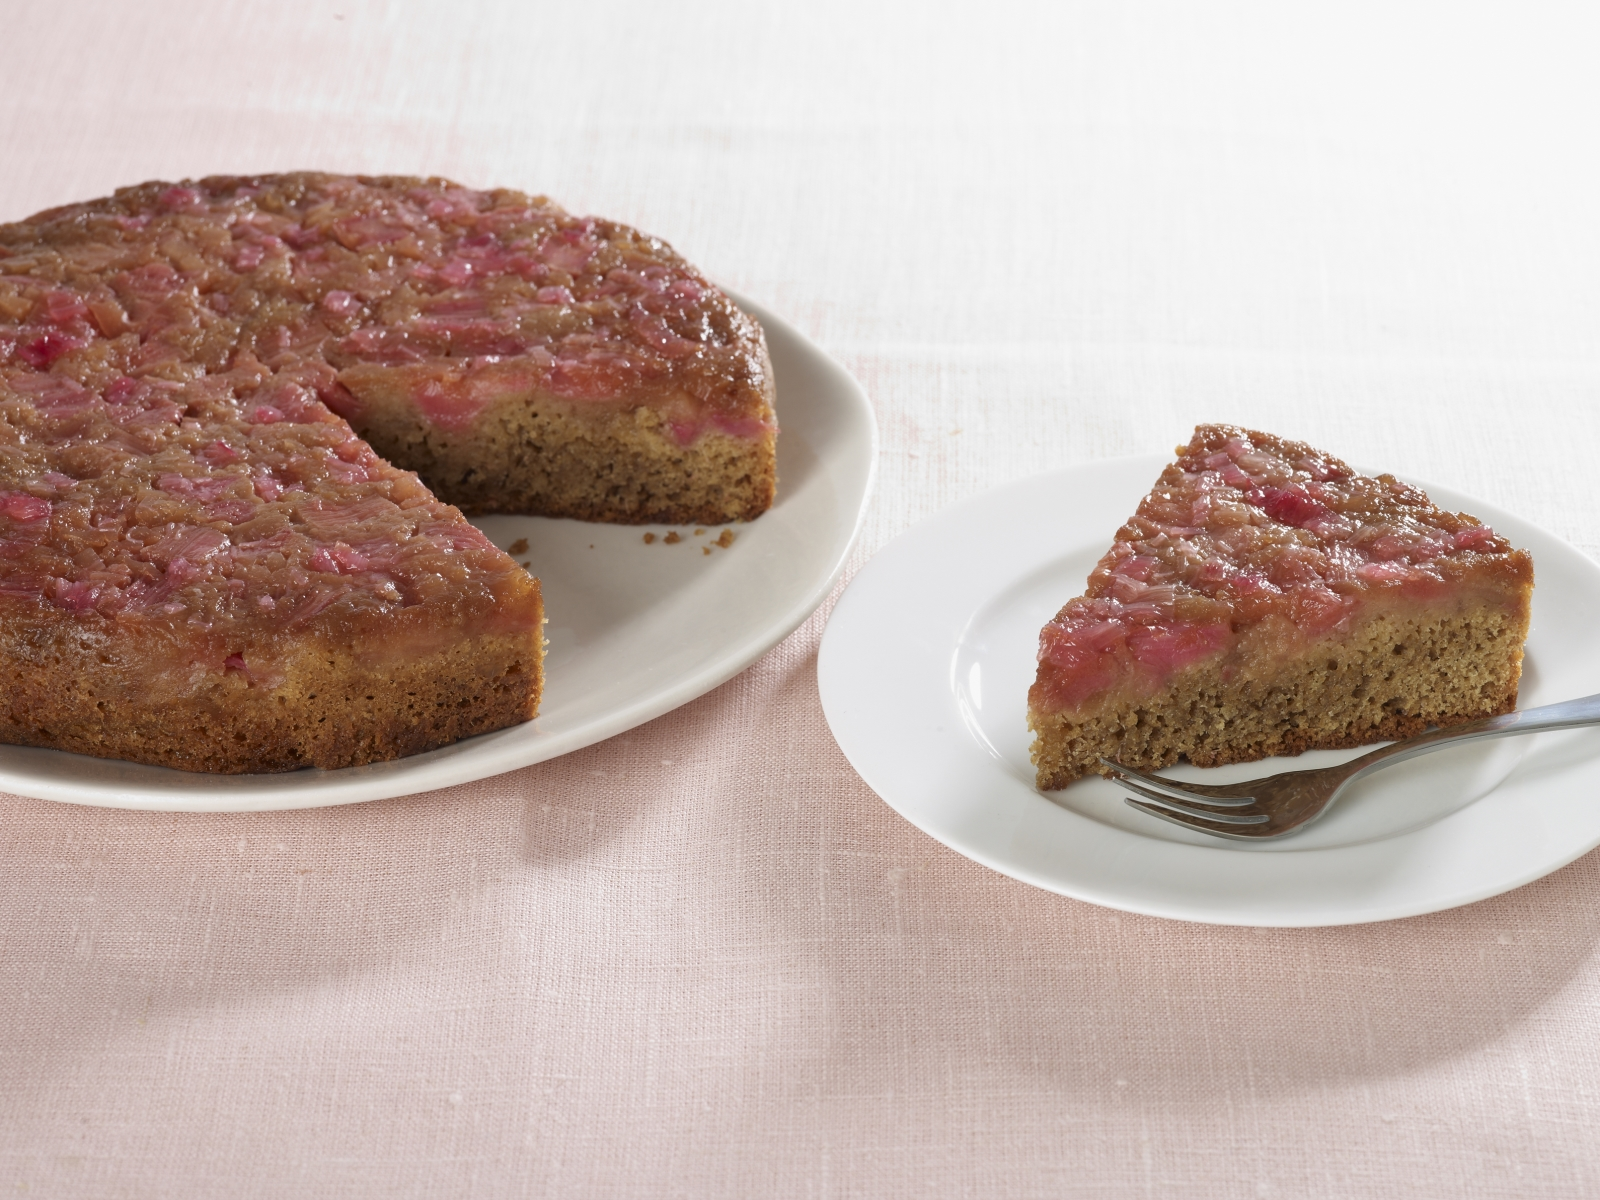 Rhubarb and Ginger Upside Down Cake - Food & Drink - msn